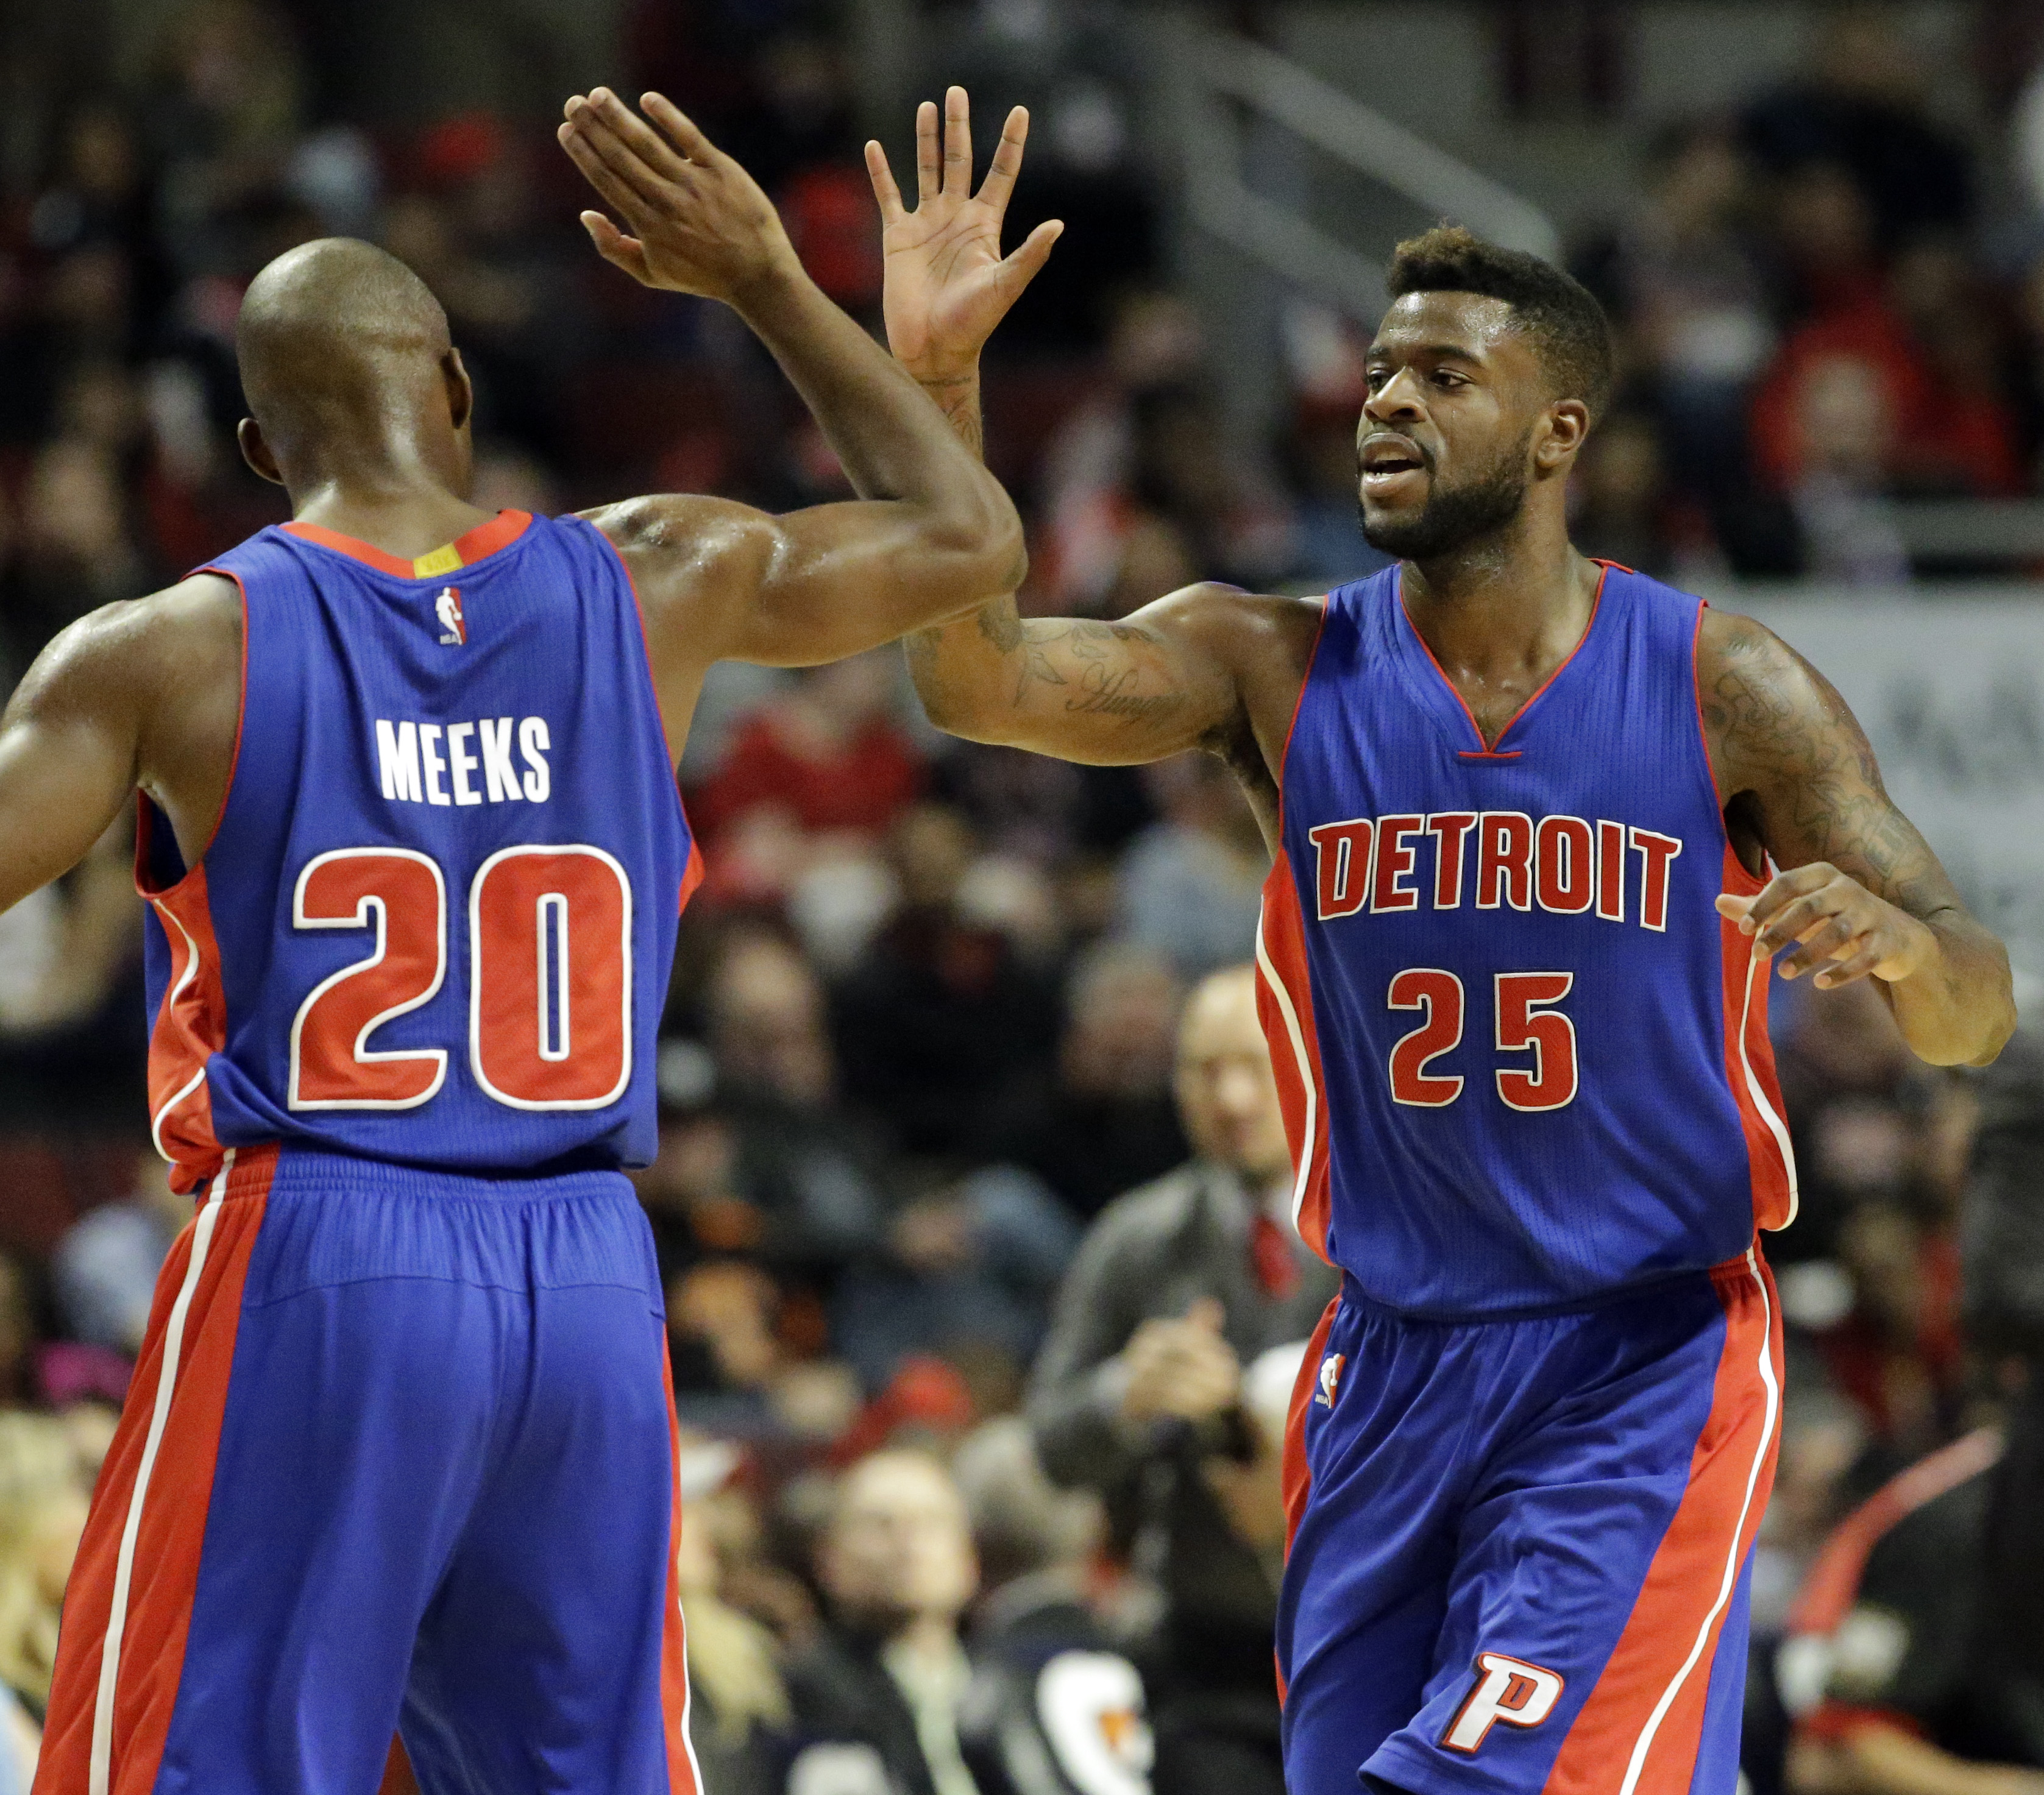 Detroit Pistons forward Reggie Bullock, right, celebrates with guard Jodie Meeks after scoring a basket during the second half of an NBA preseason basketball game against the Chicago Bulls on Wednesday, Oct. 14, 2015, in Chicago. The Pistons won 114-91. (